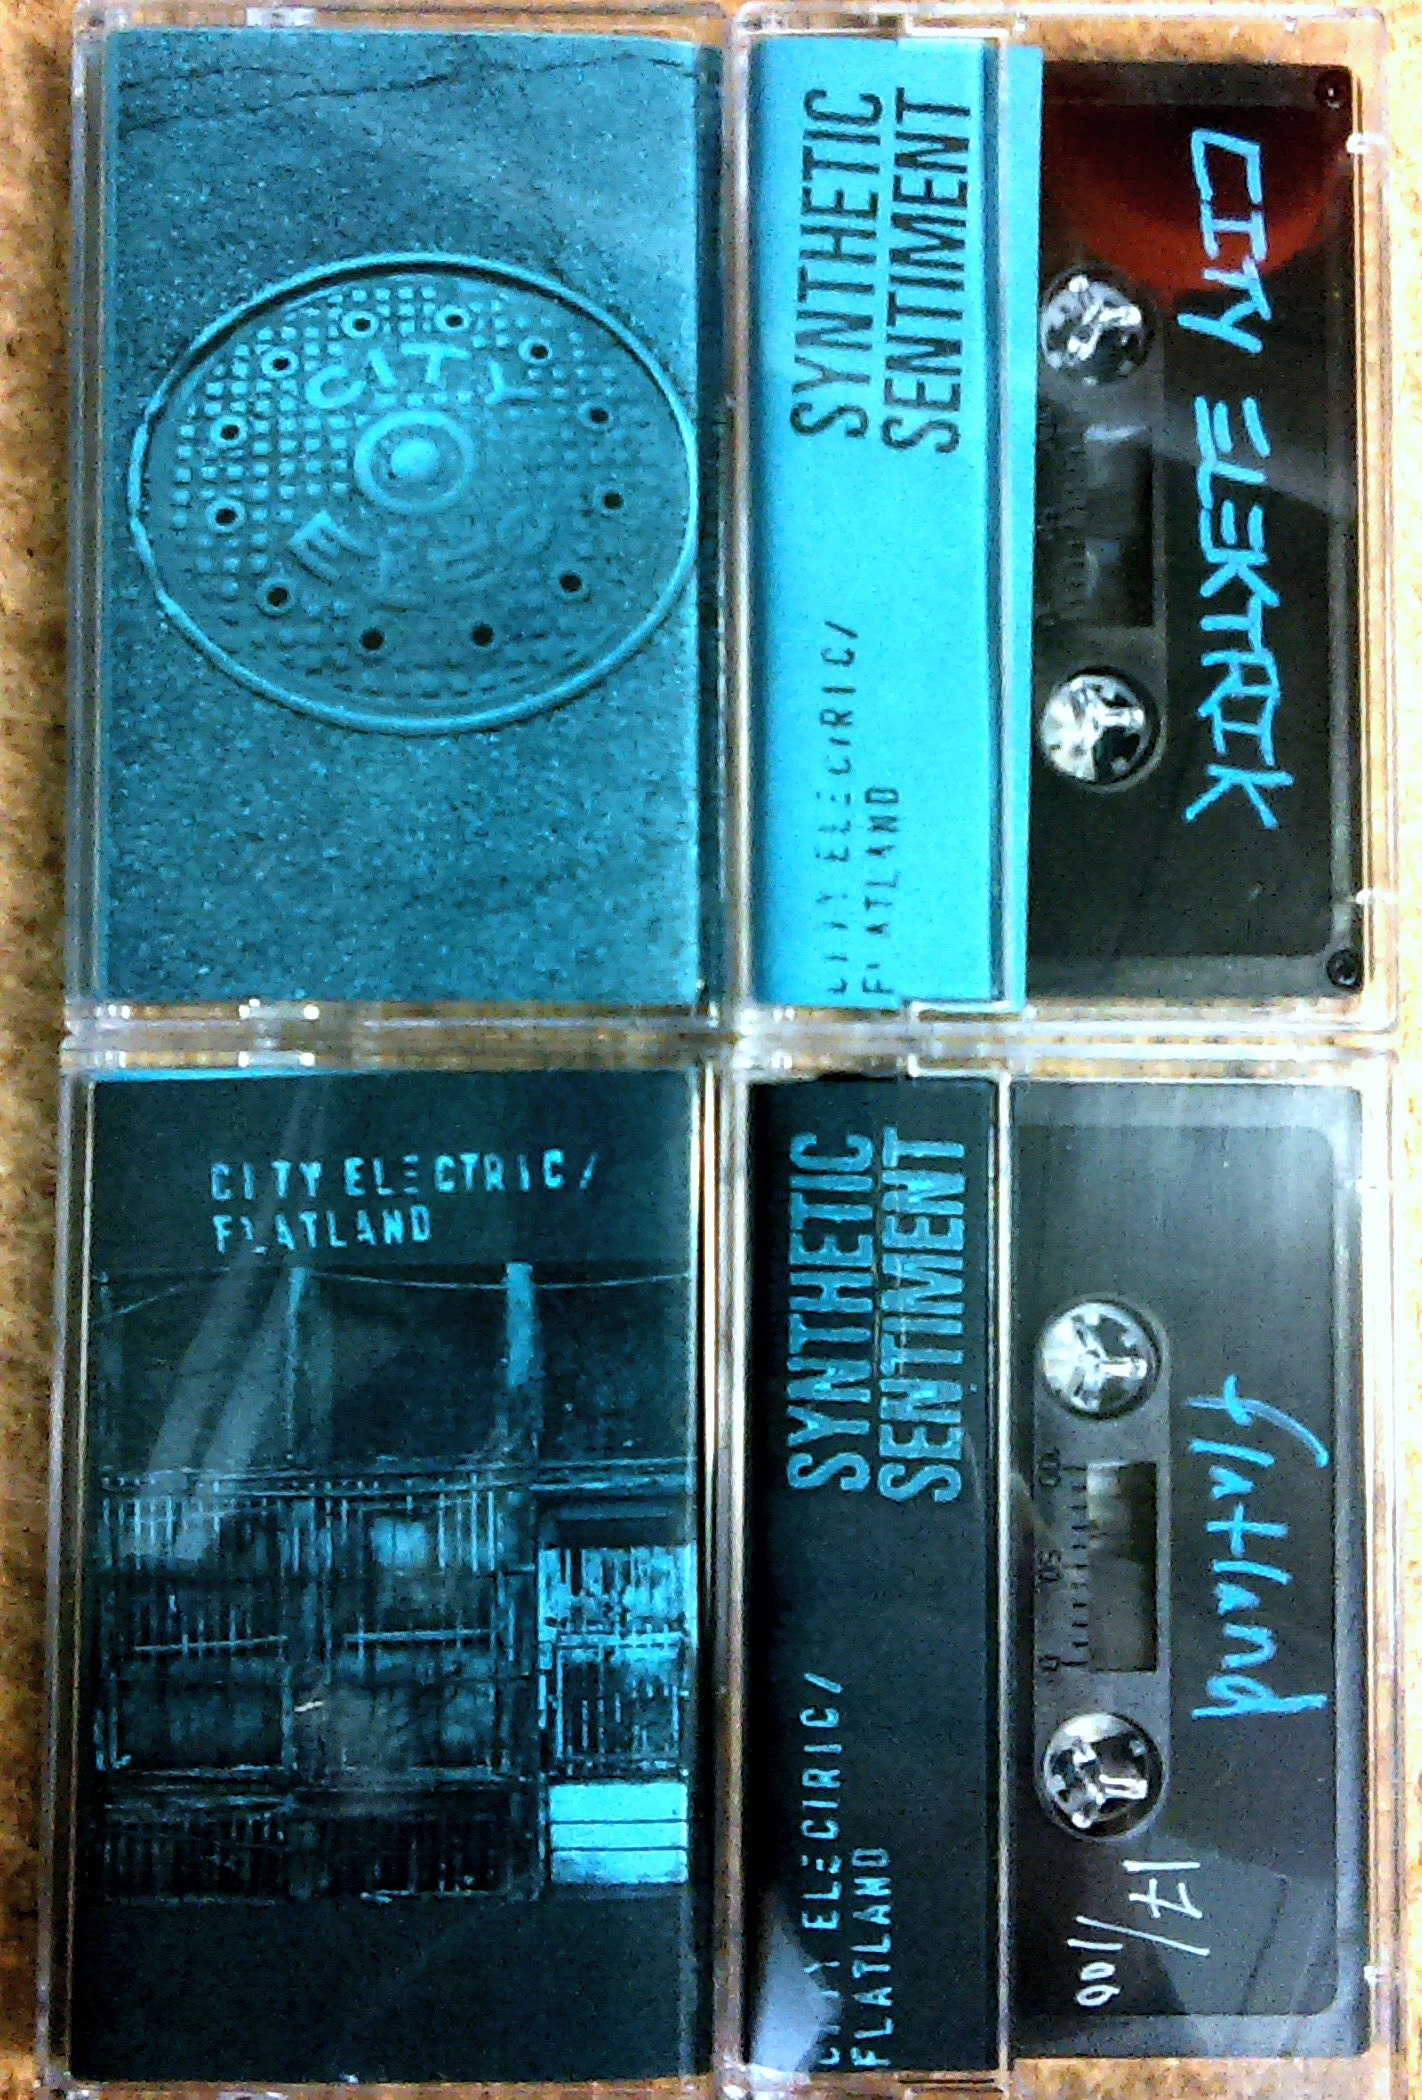 City Electric & Flatland/SPLIT TAPE